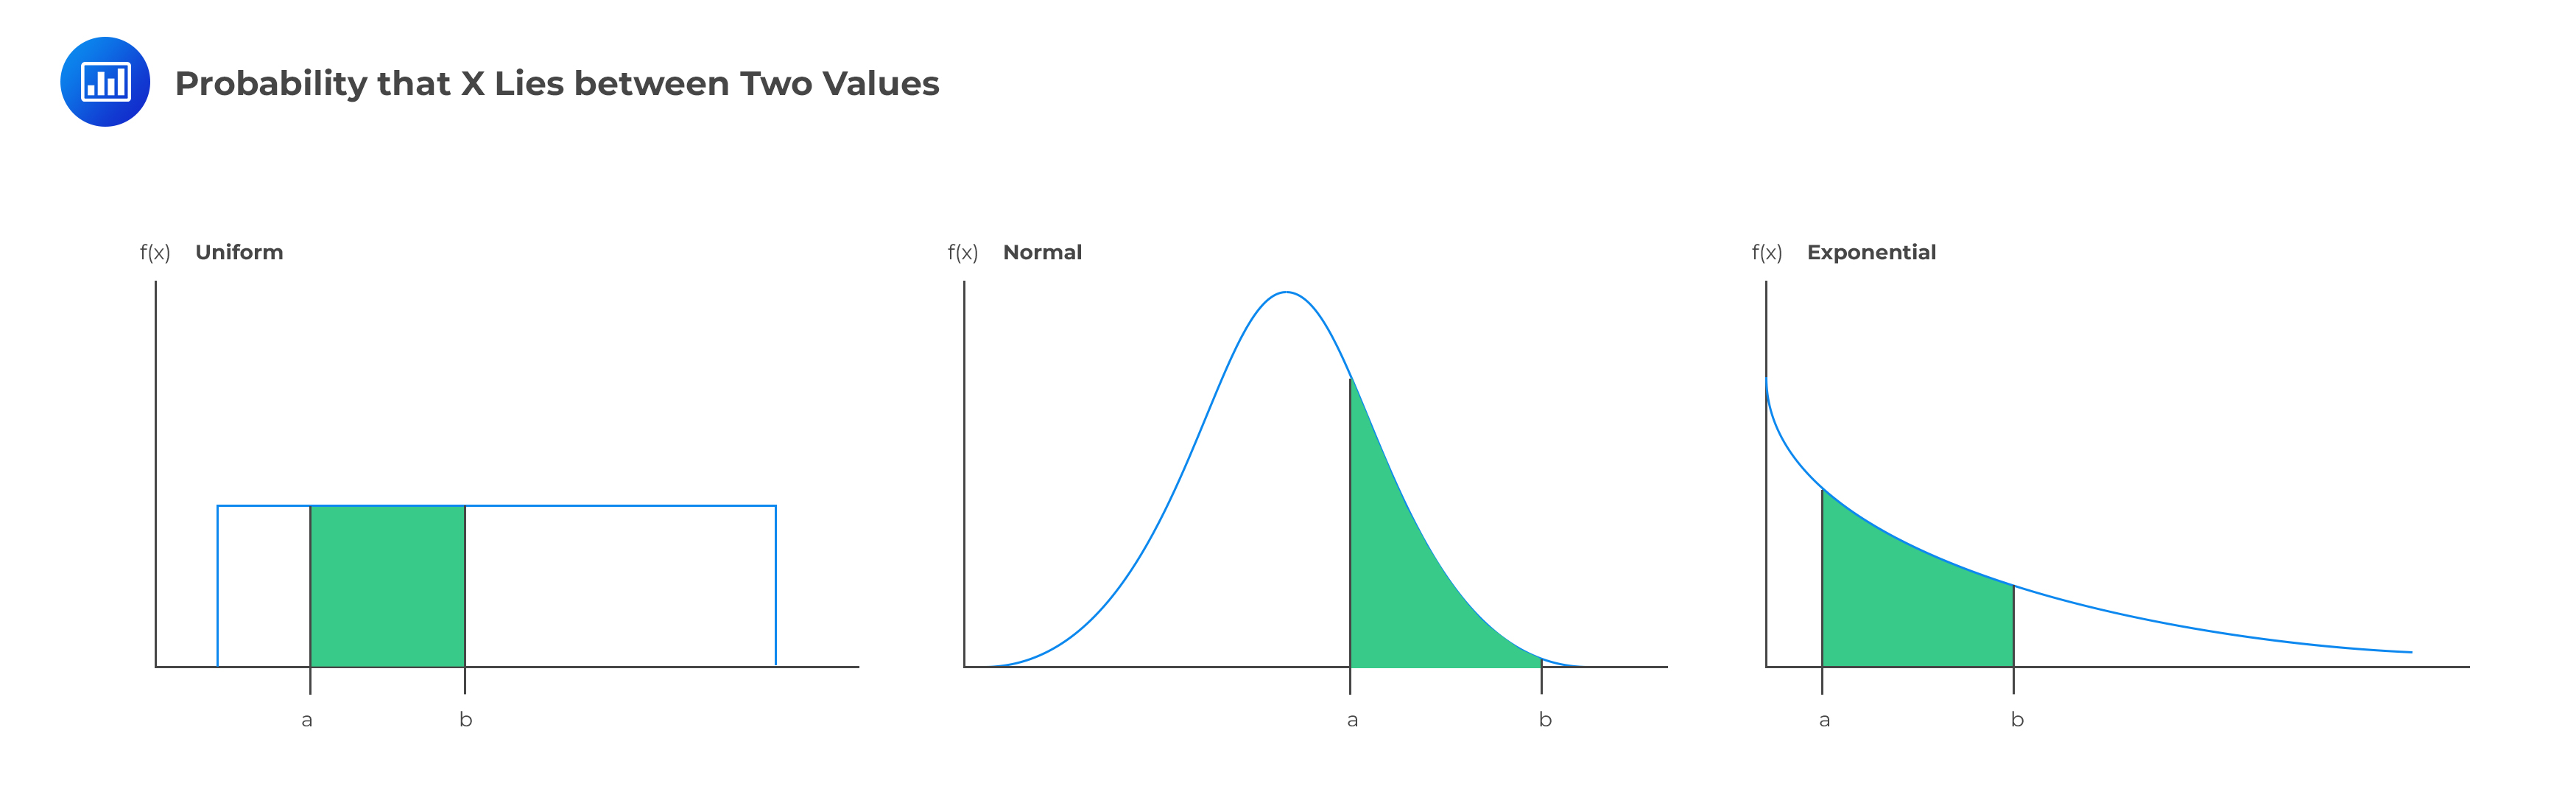 Probability that X lies between two values